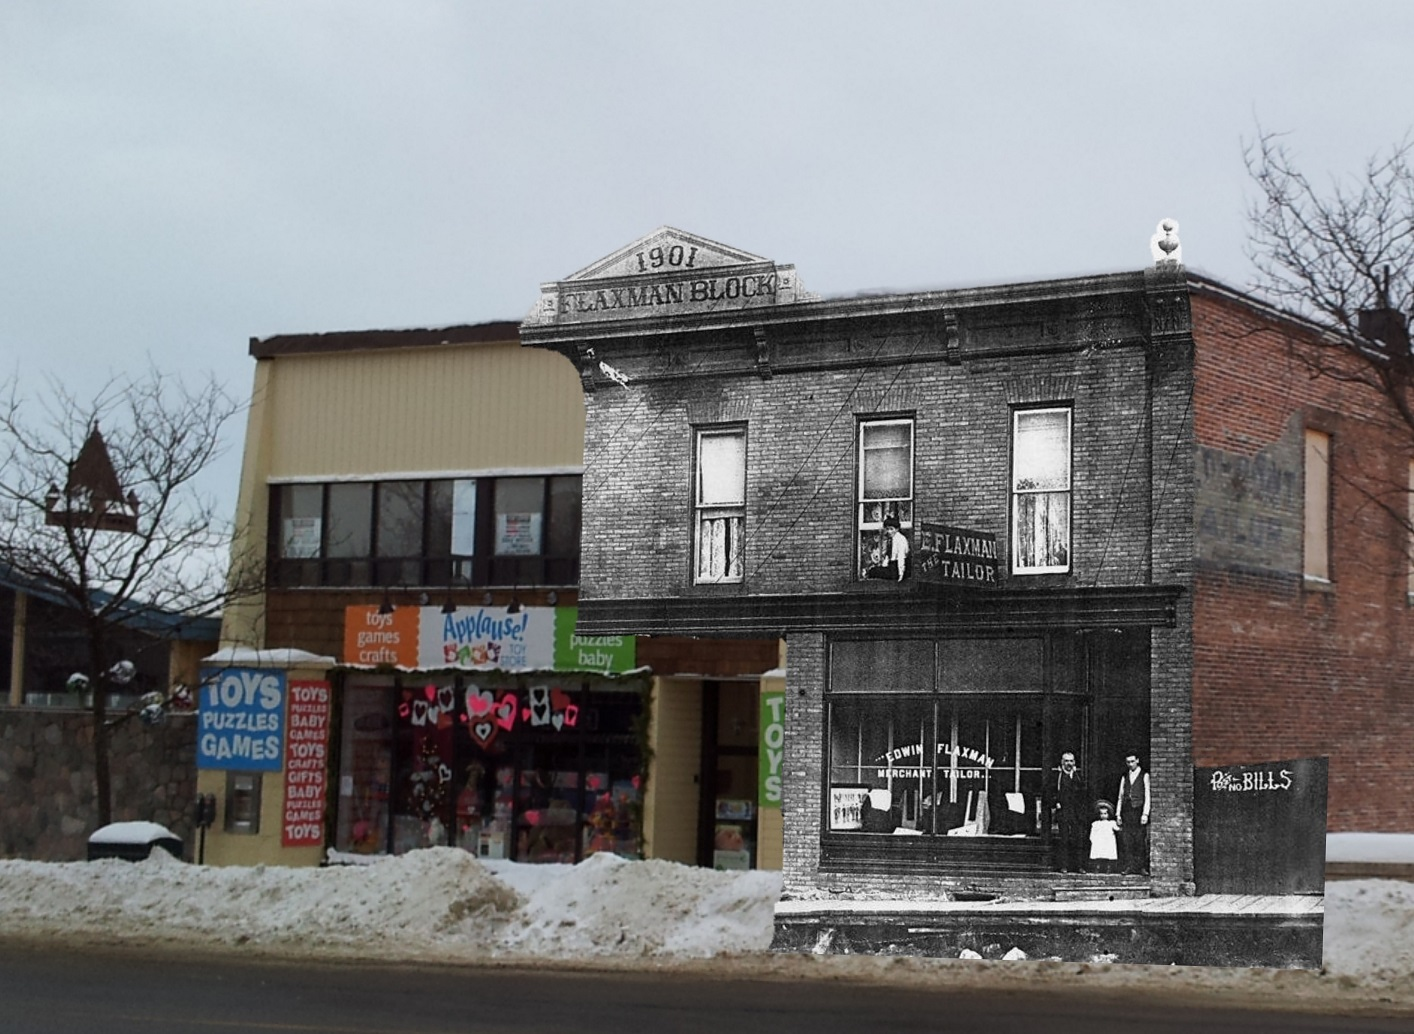 A vintage photo of the Flaxman Block superimposed on the building in that location now. The building now houses Marigold restaurant and The Record Shoppe. (Courtesy of Kelly McCaw)